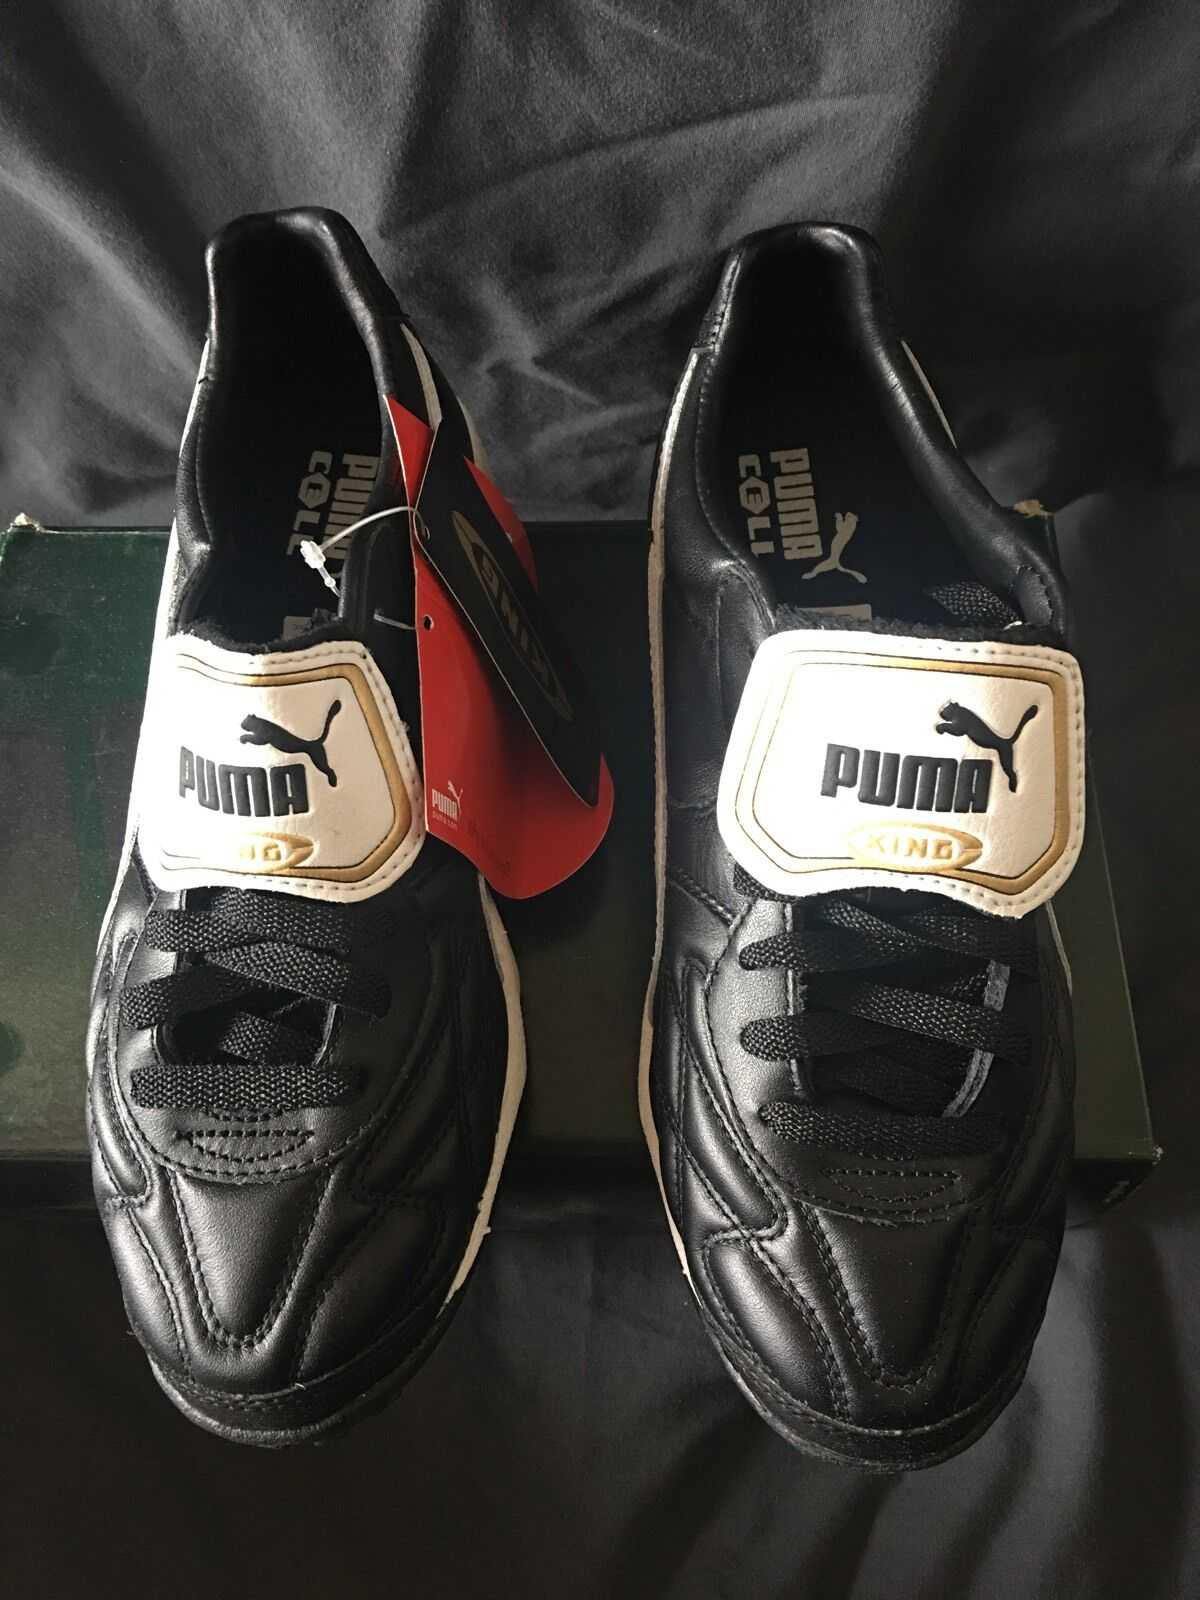 Puma King Allround IT Model 170119 Size 6.5 US